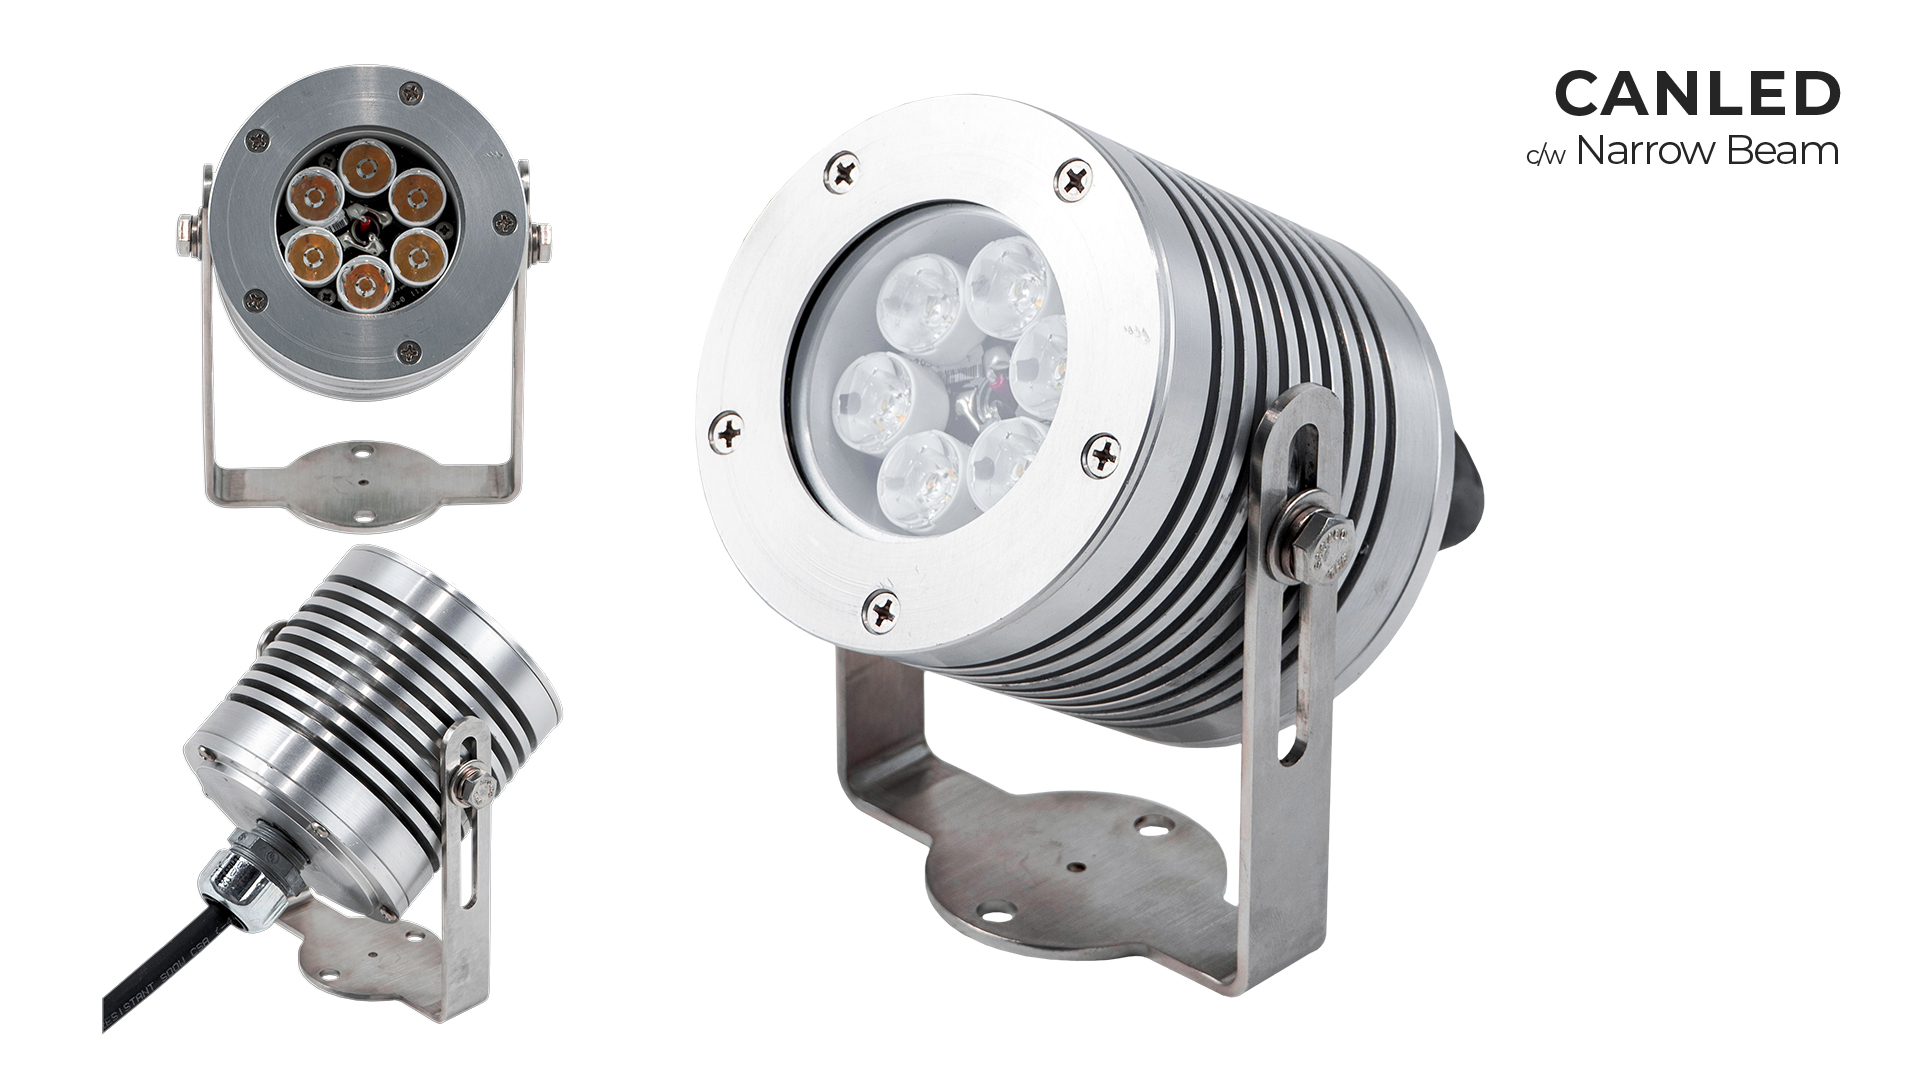 Nemalux CANLED hazardous location class I div 2 (c1d2) industrial LED luminaire c/w Narrow Beam Lens